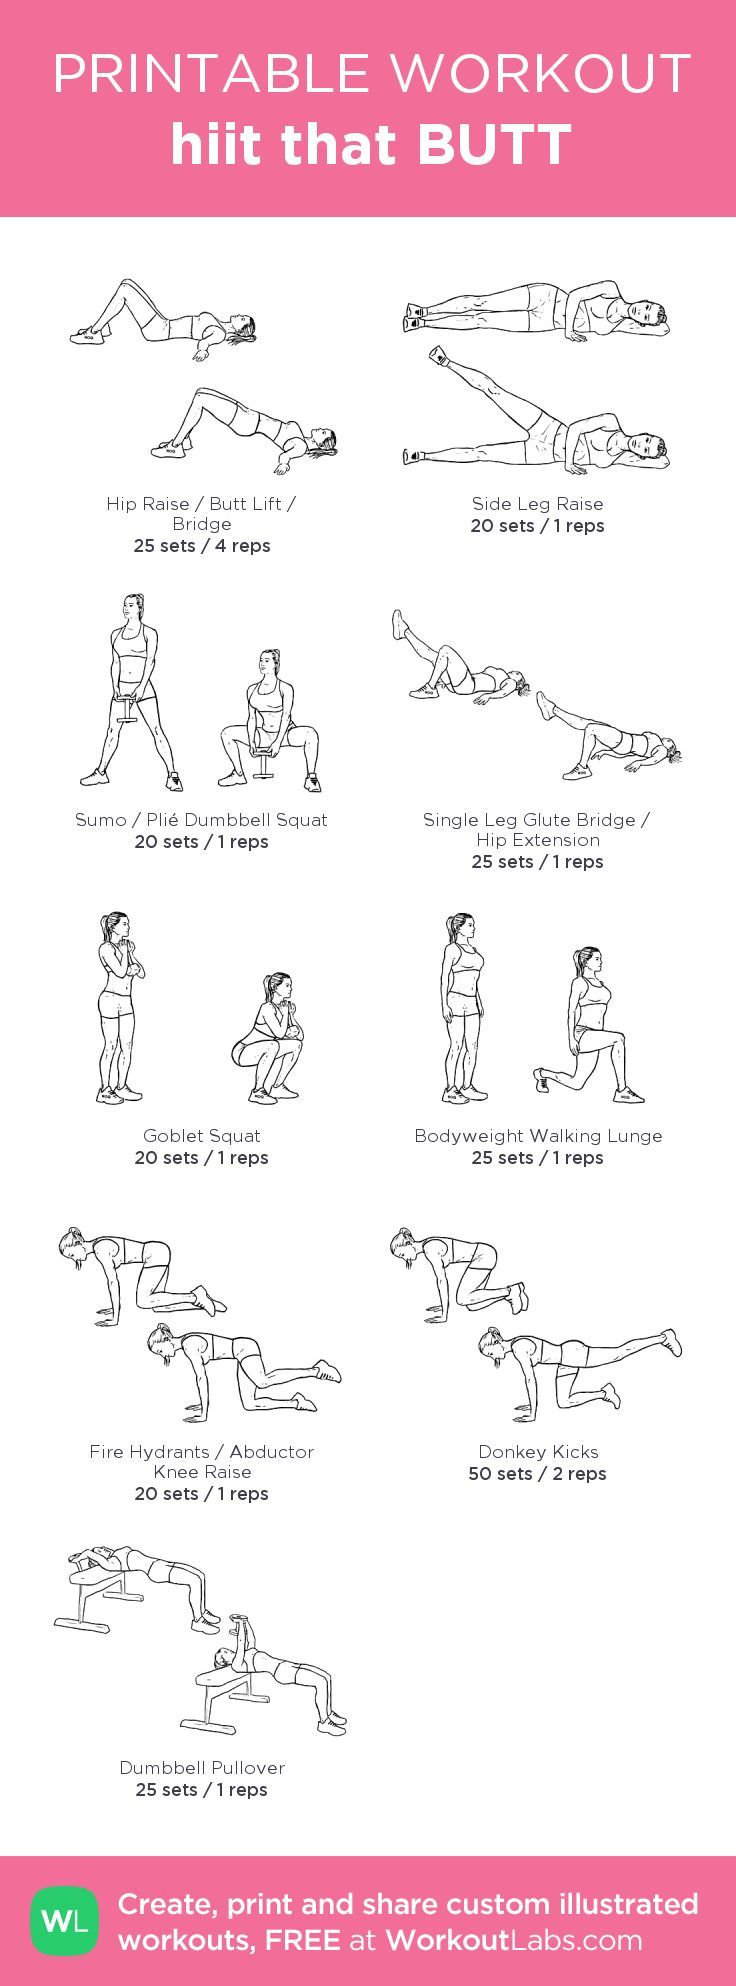 hiit that BUTT – my custom workout created at WorkoutLabs.com • Click through to download as printable PDF! #customworkout: